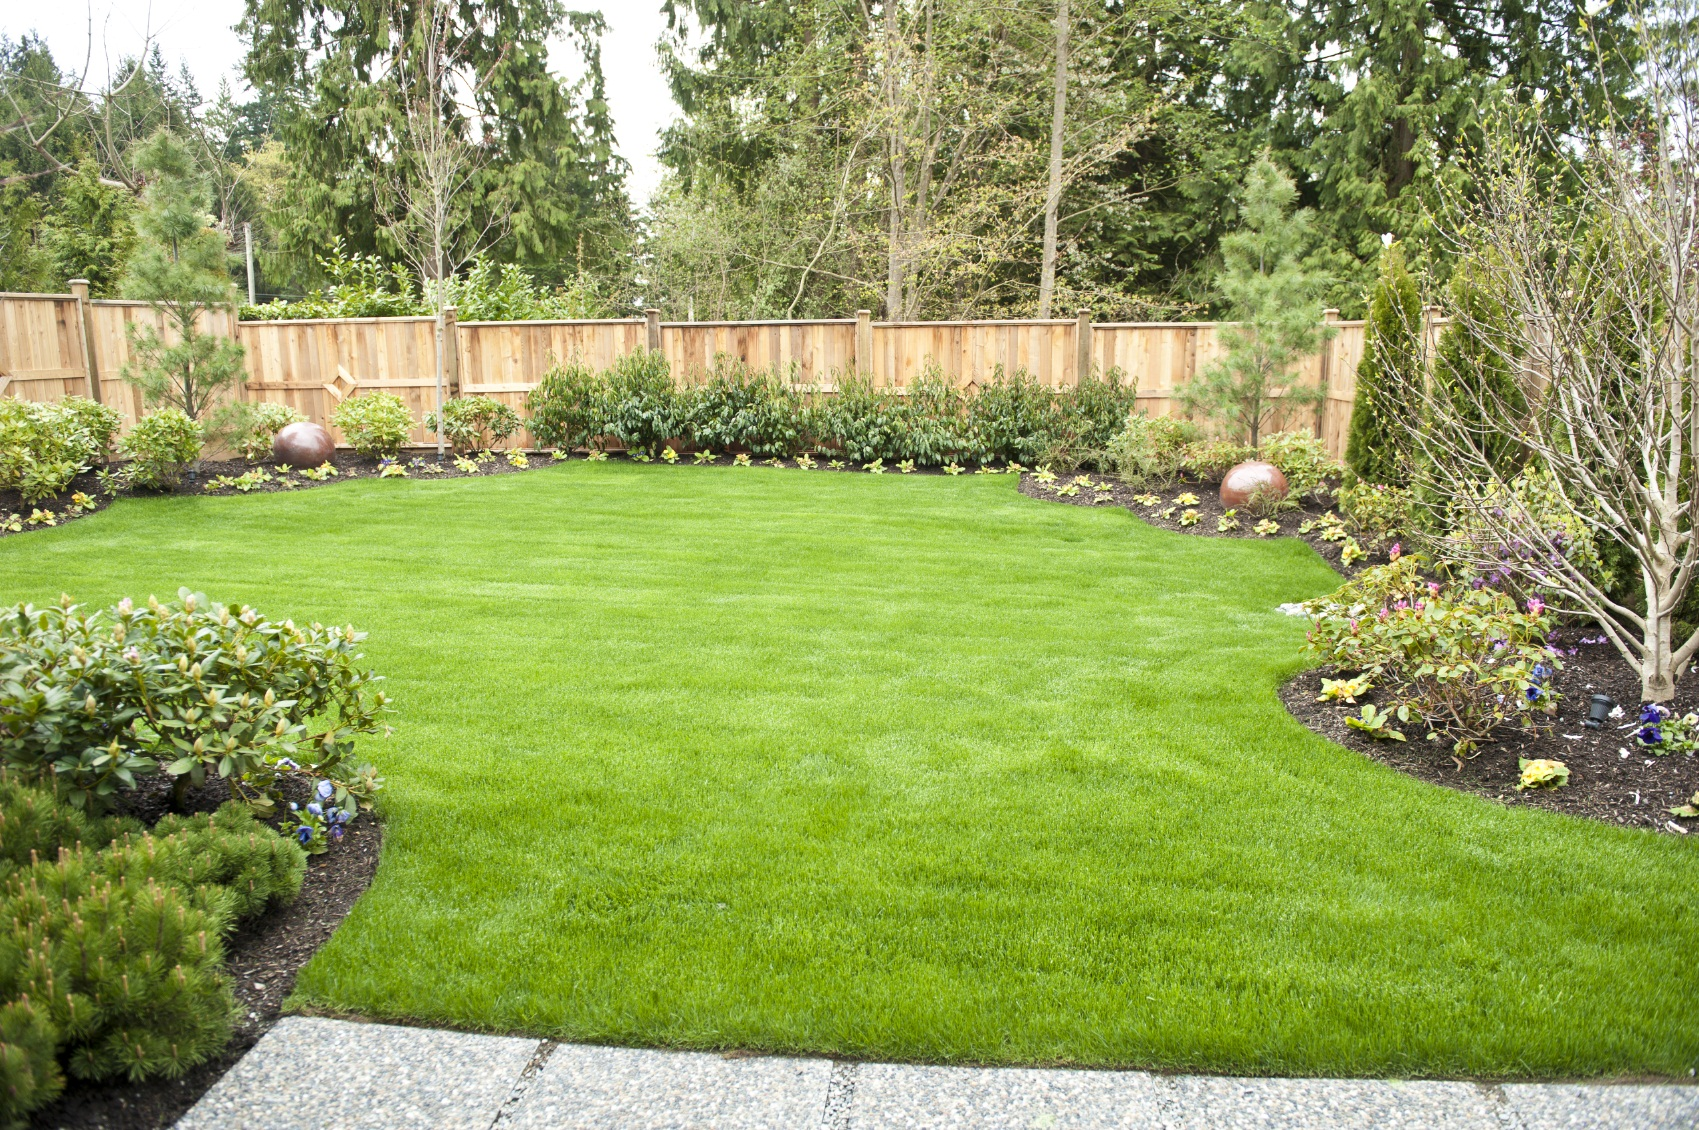 Backyard landscaping tips metamorphosis landscape design for Backyard garden ideas